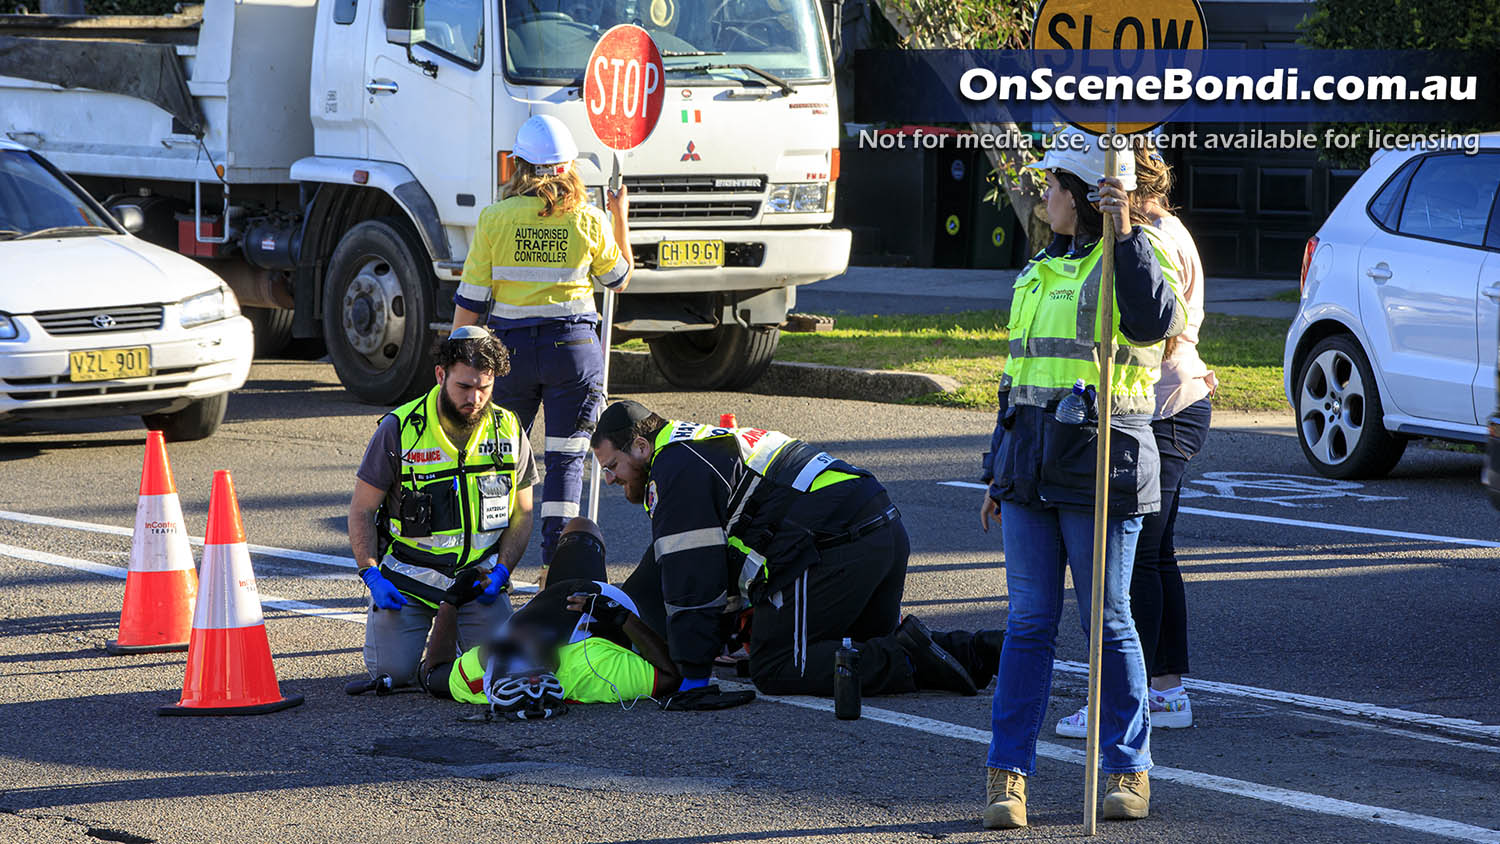 Cyclist hit by truck in Vaucluse